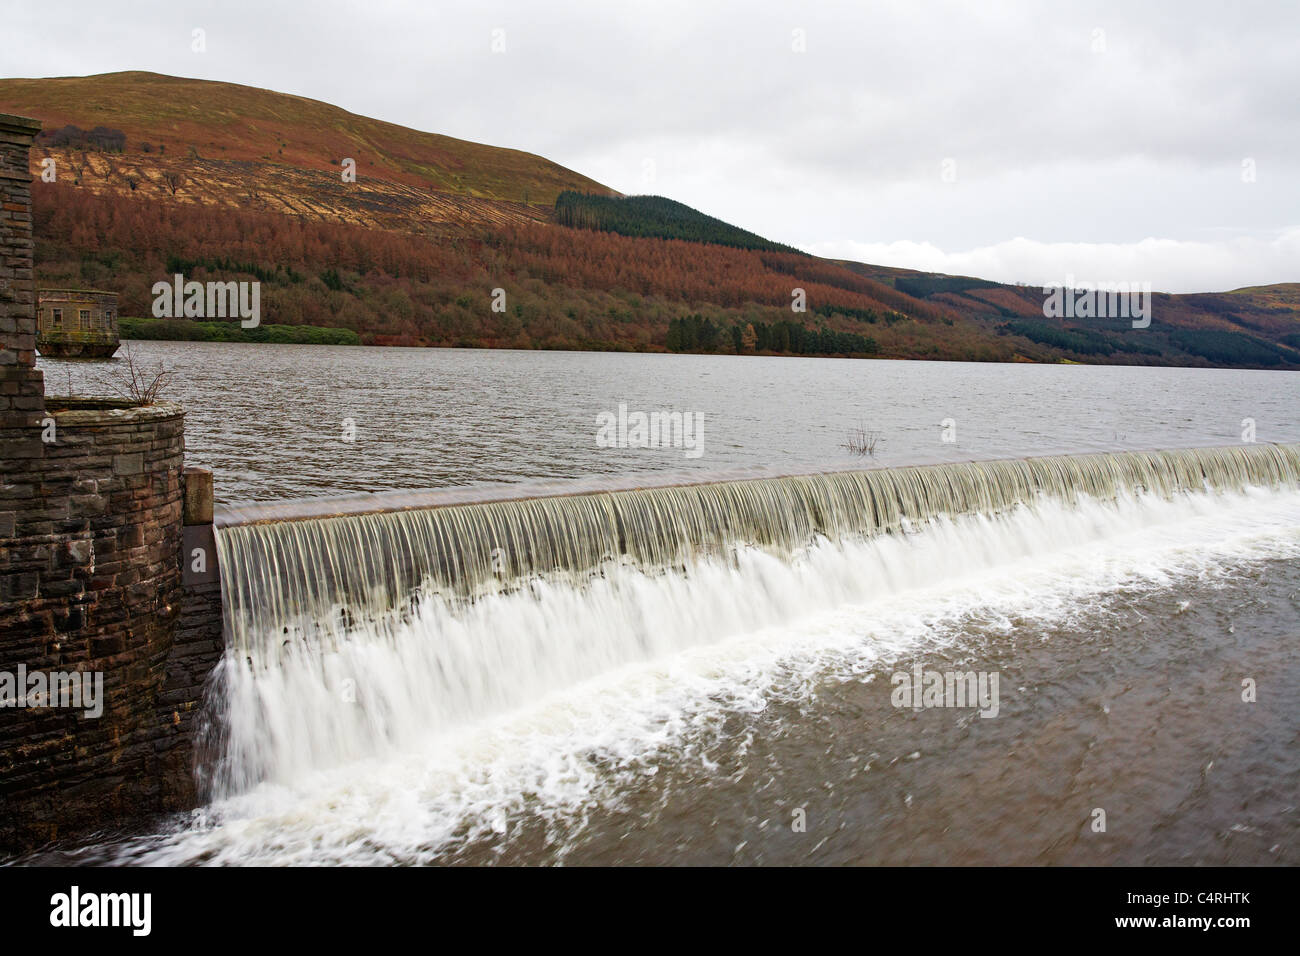 Talybont Reservoir, Brecon Beacons National Park, Wales - Stock Image